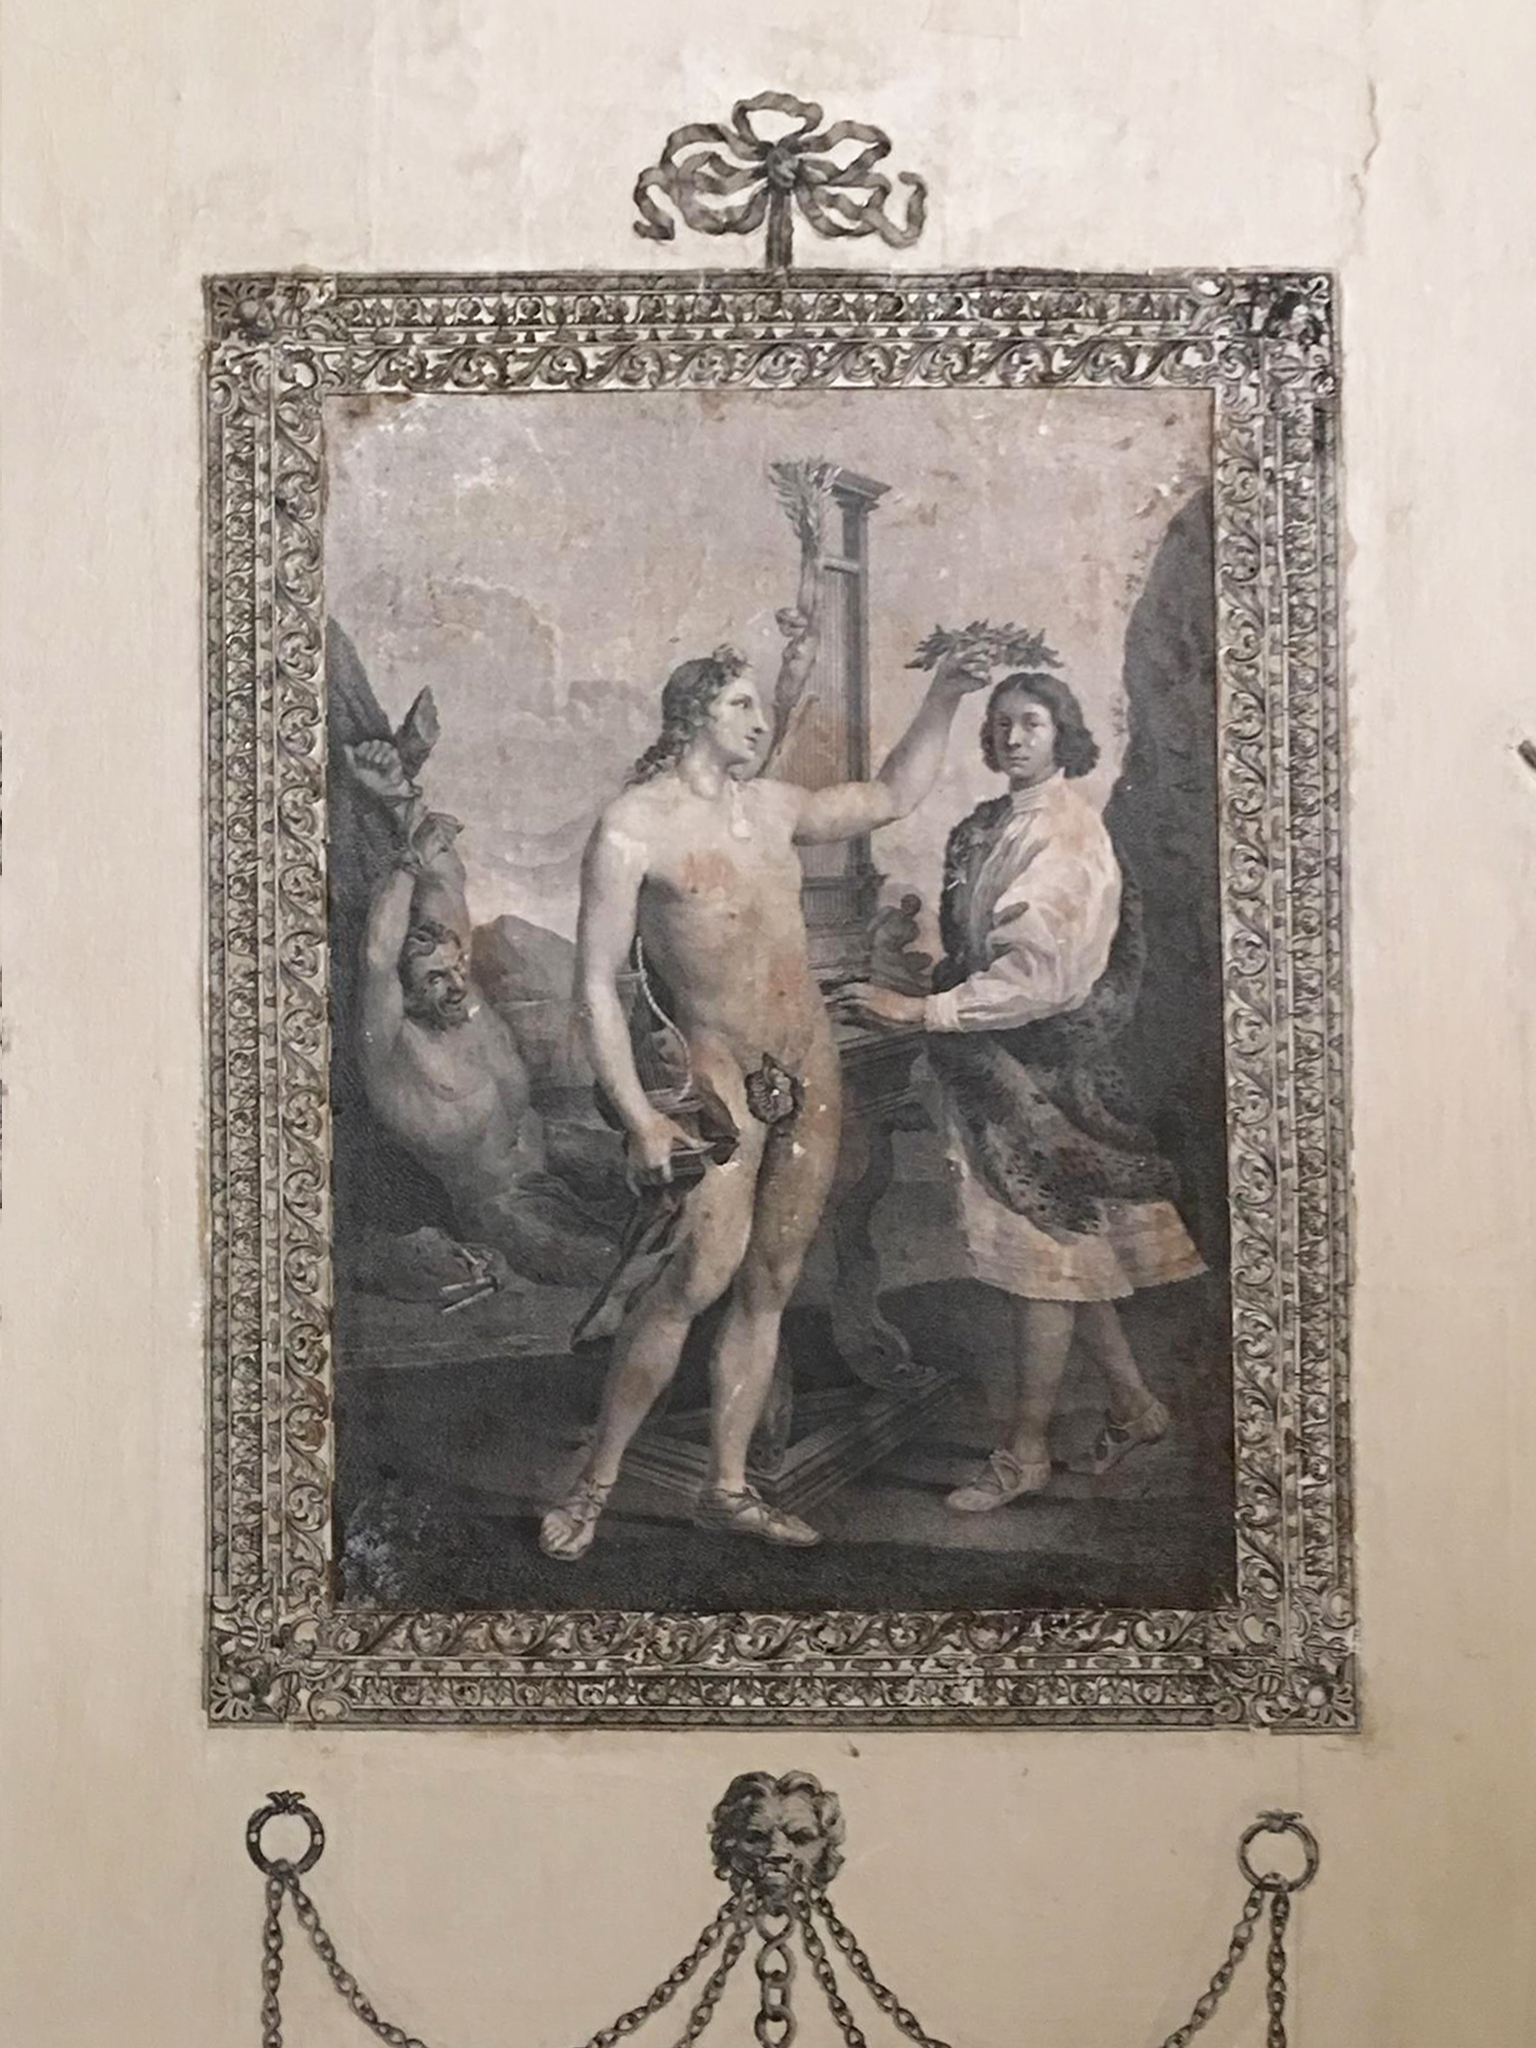 28D Castletown House Kildare Ireland Robert Strange 1755 after Sacchi Marcantonio Pasqualini crowned by Apollo 1641